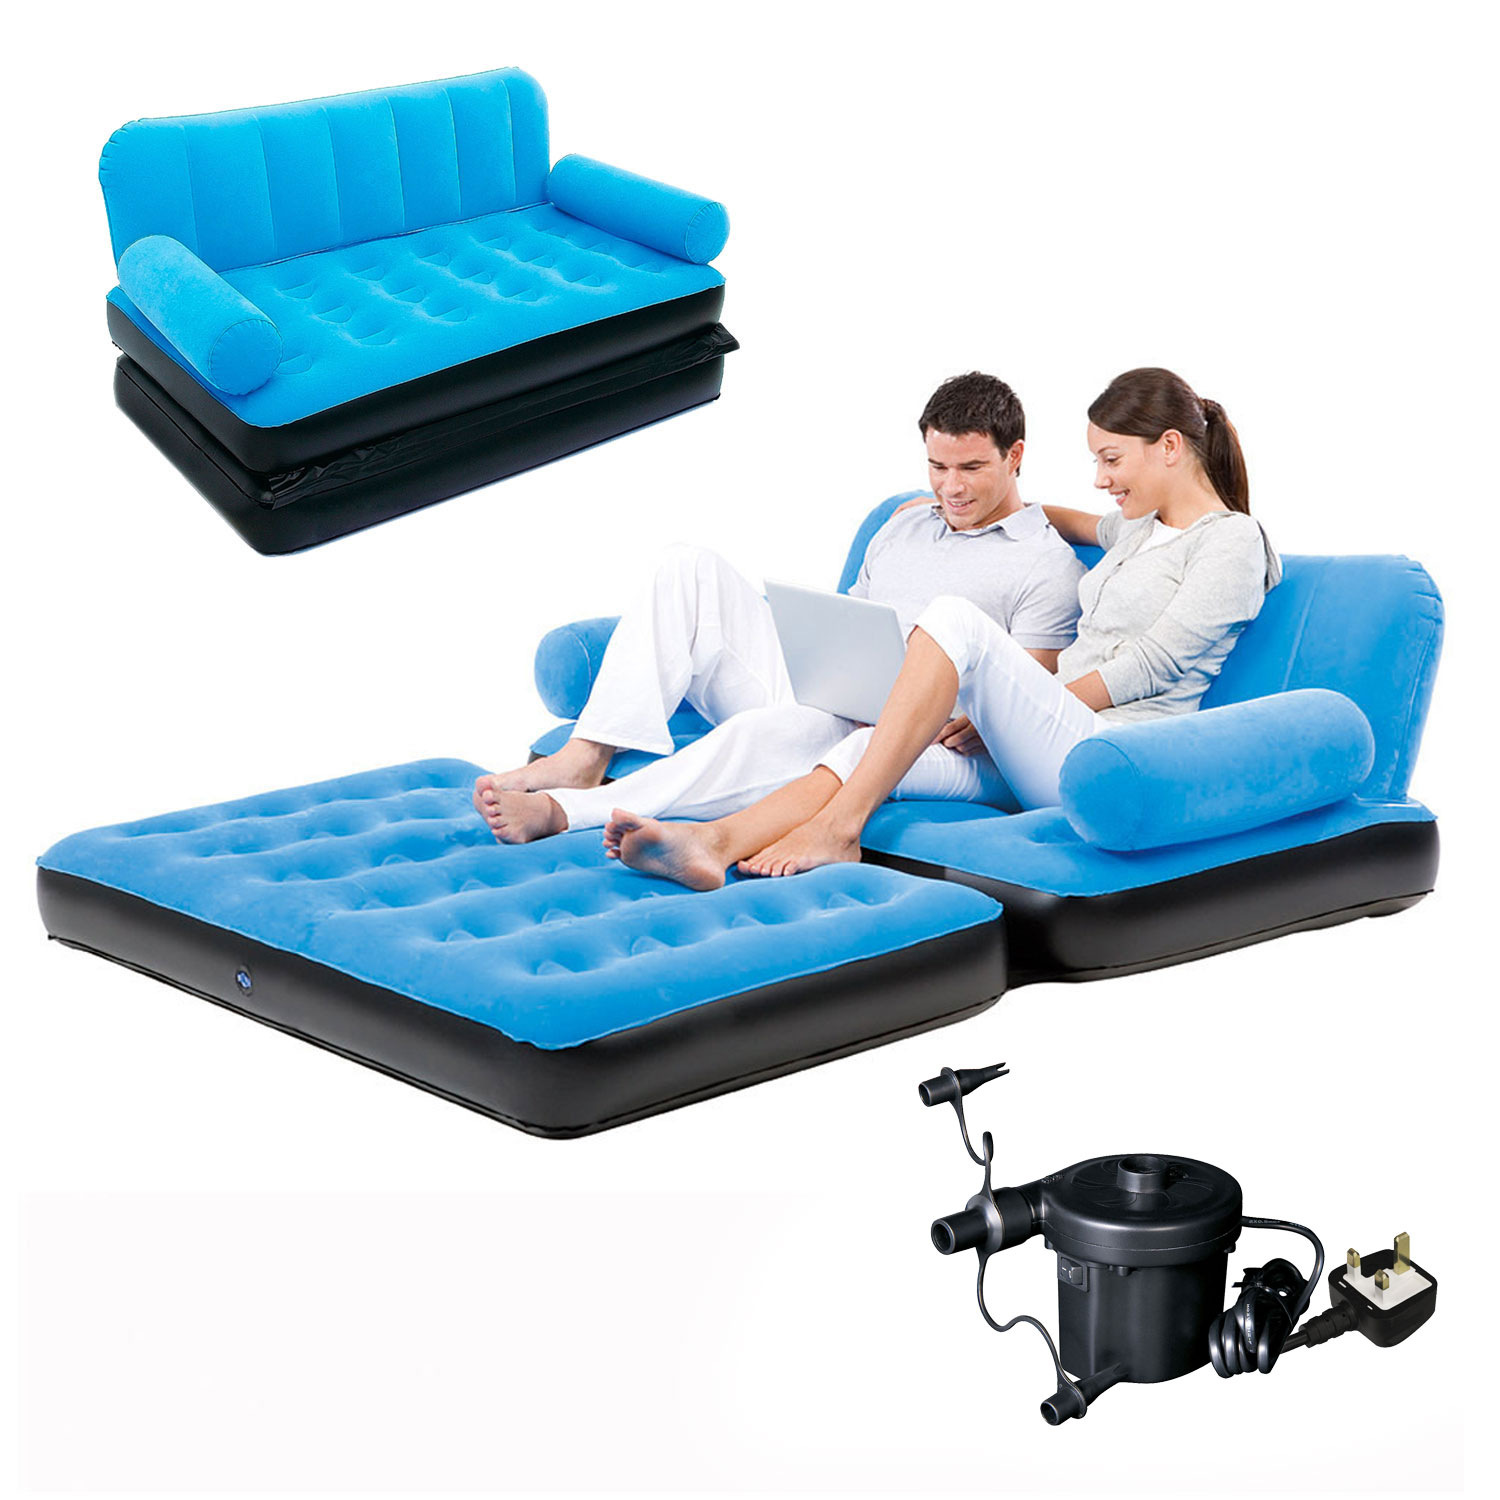 7b1c755f669 Details about Inflatable Sofa Bed Double Airbed Couch Blow Up Lounger Air  Mattress With Pump